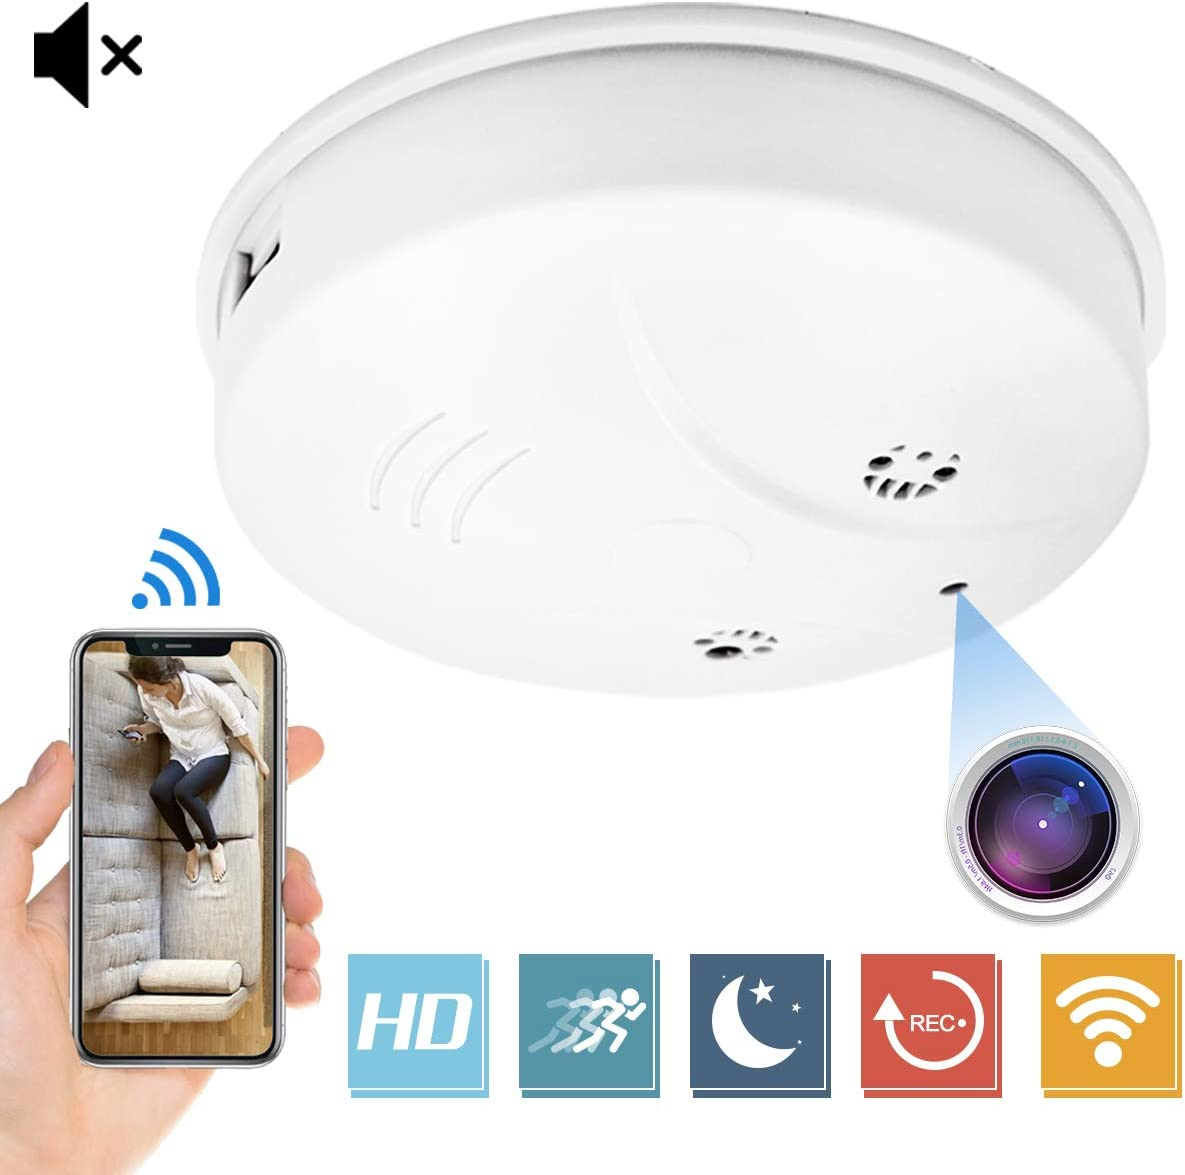 Wireless Hidden Camera AMCSXH HD 1080P Nanny Cam Baby Pet Monitor WiFi Smoke Detector Camera Motion Detection/Indoor Security Monitoring Camera Support iOS/Android